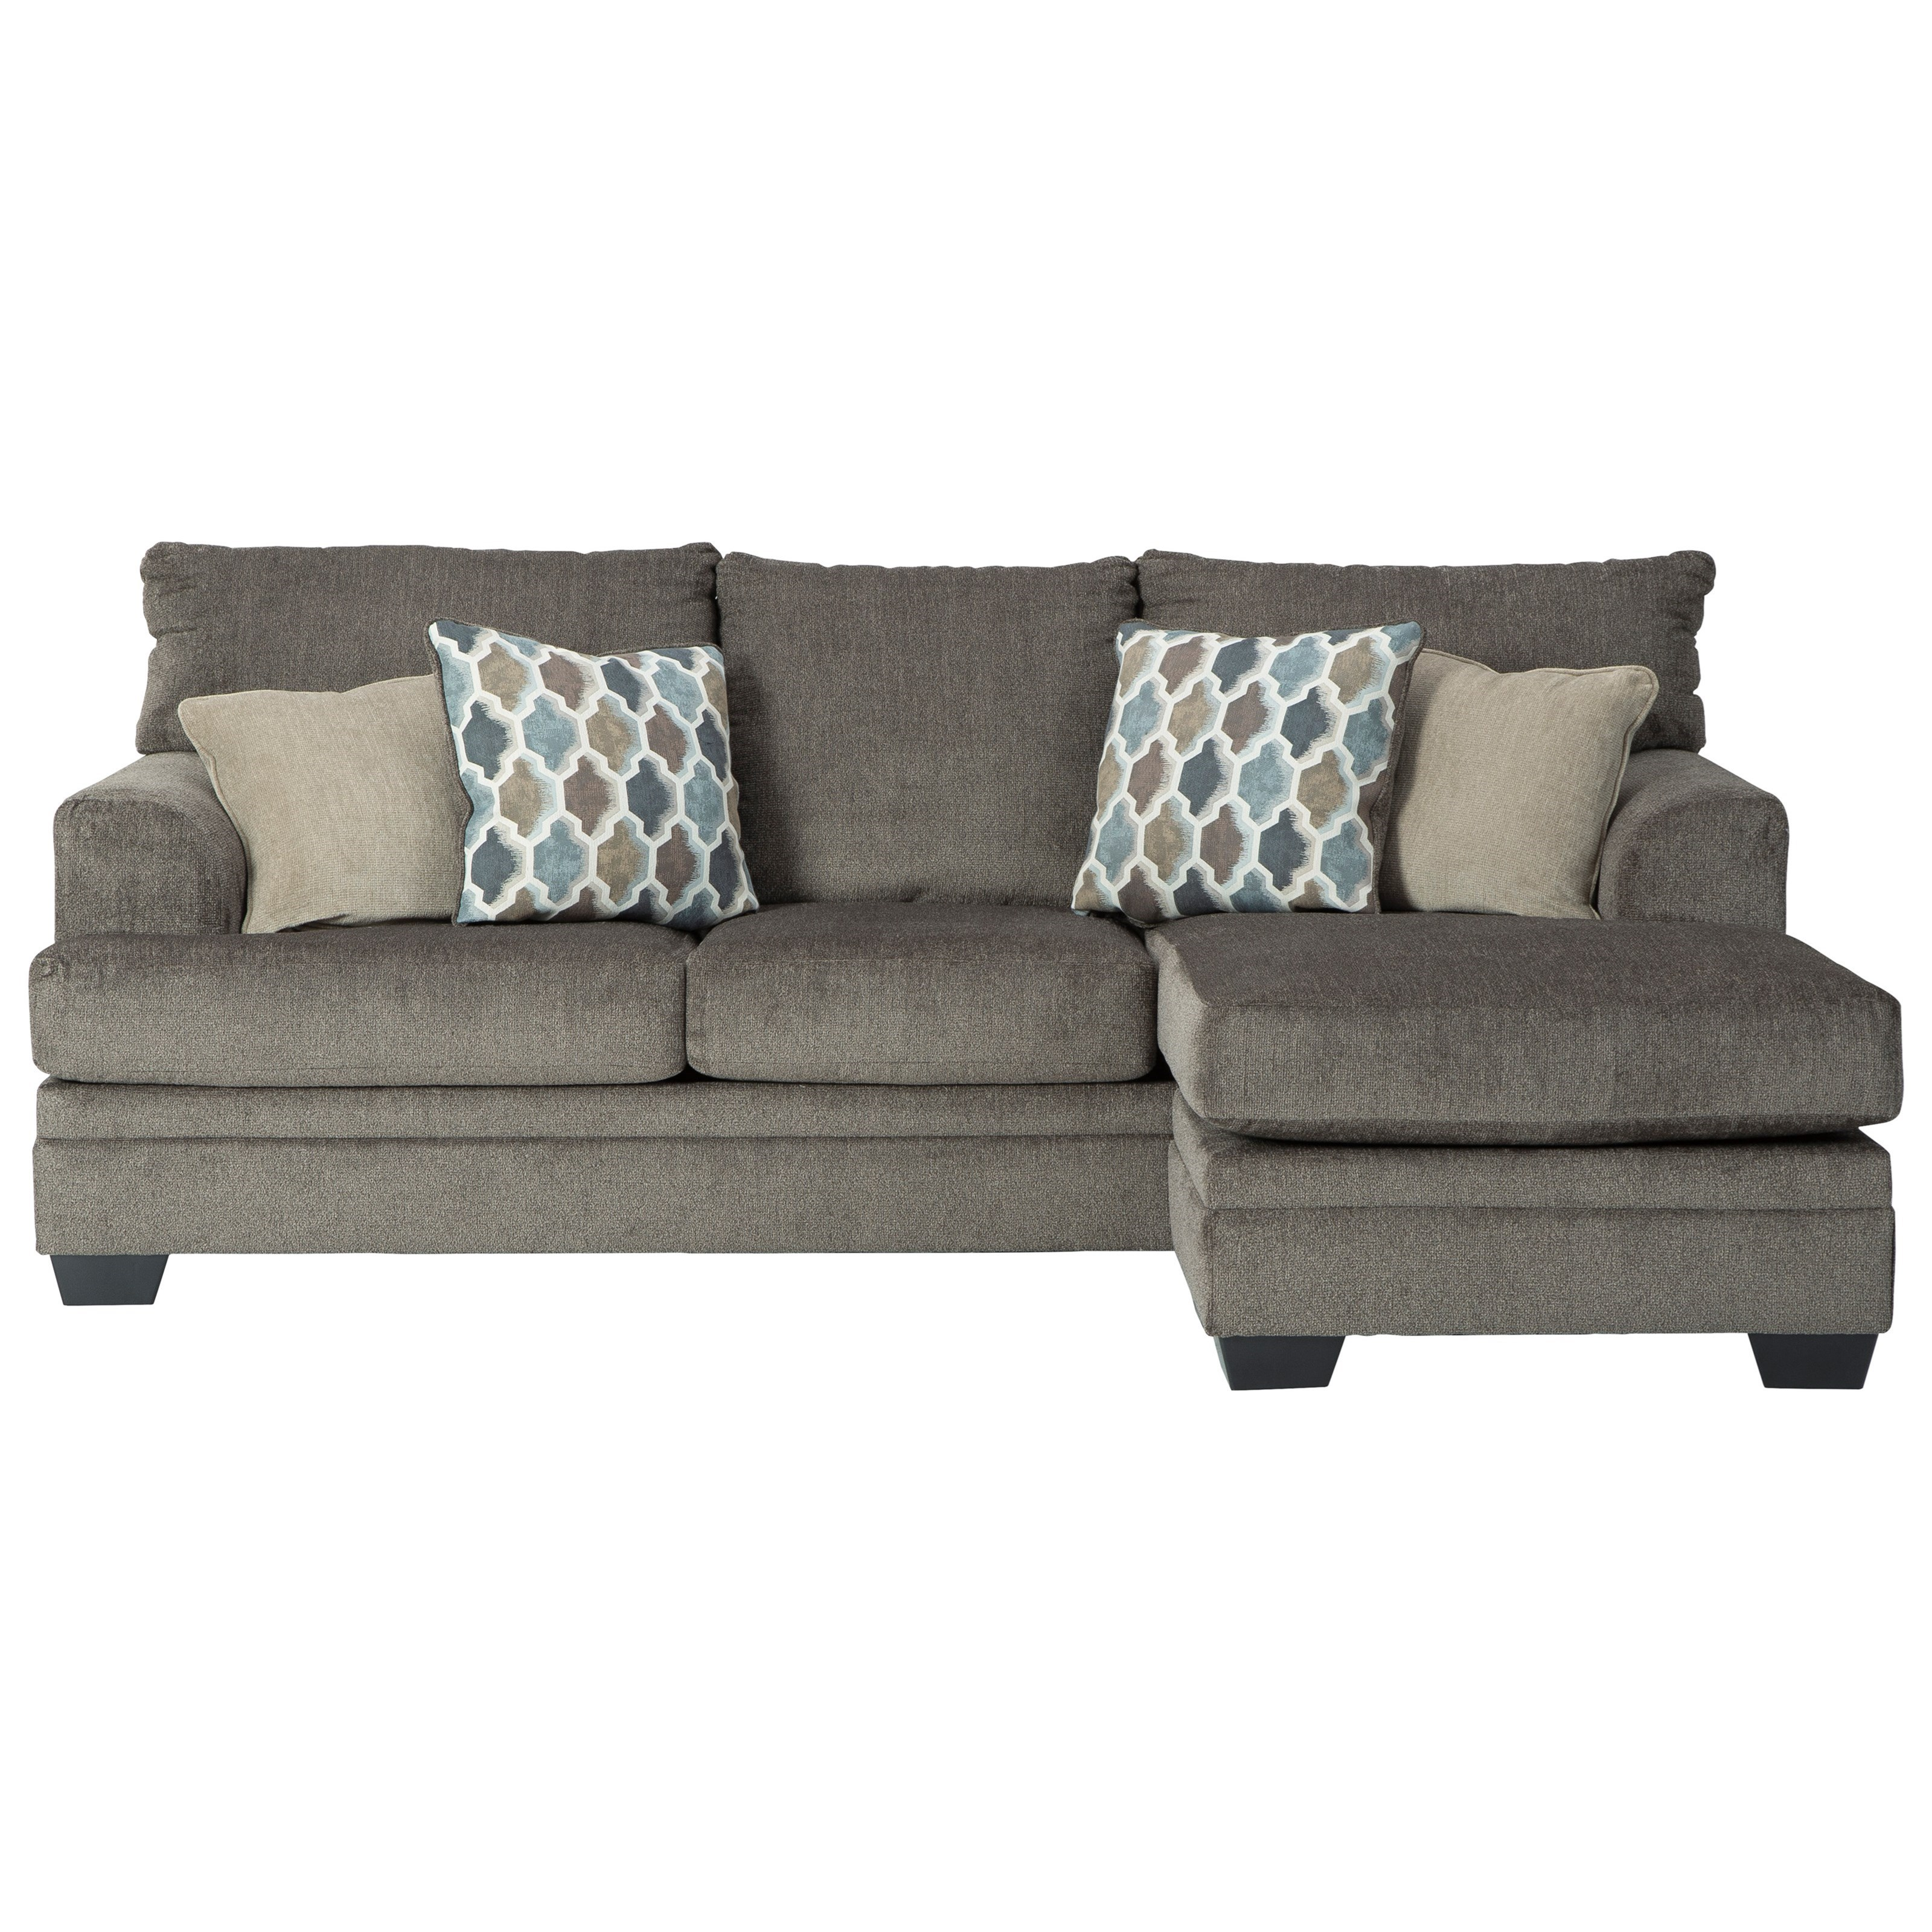 Dorsten Sofa with Chaise by Signature Design by Ashley at Beck's Furniture